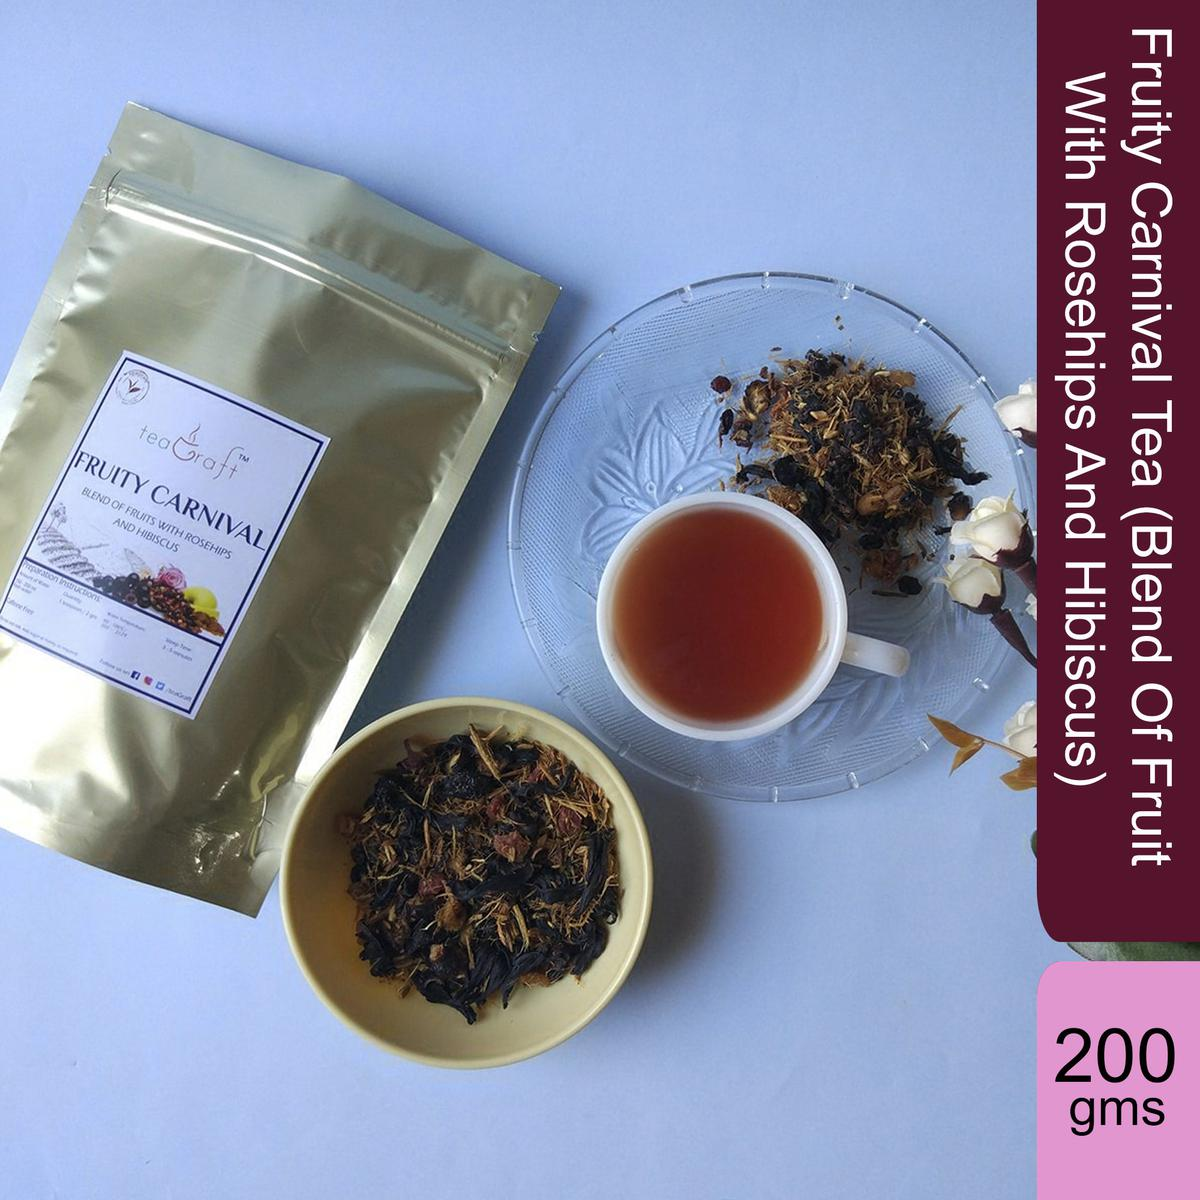 Fruity Carnival Tea (Blend Of Fruit With Rosehips And Hibiscus) - 200 Gms